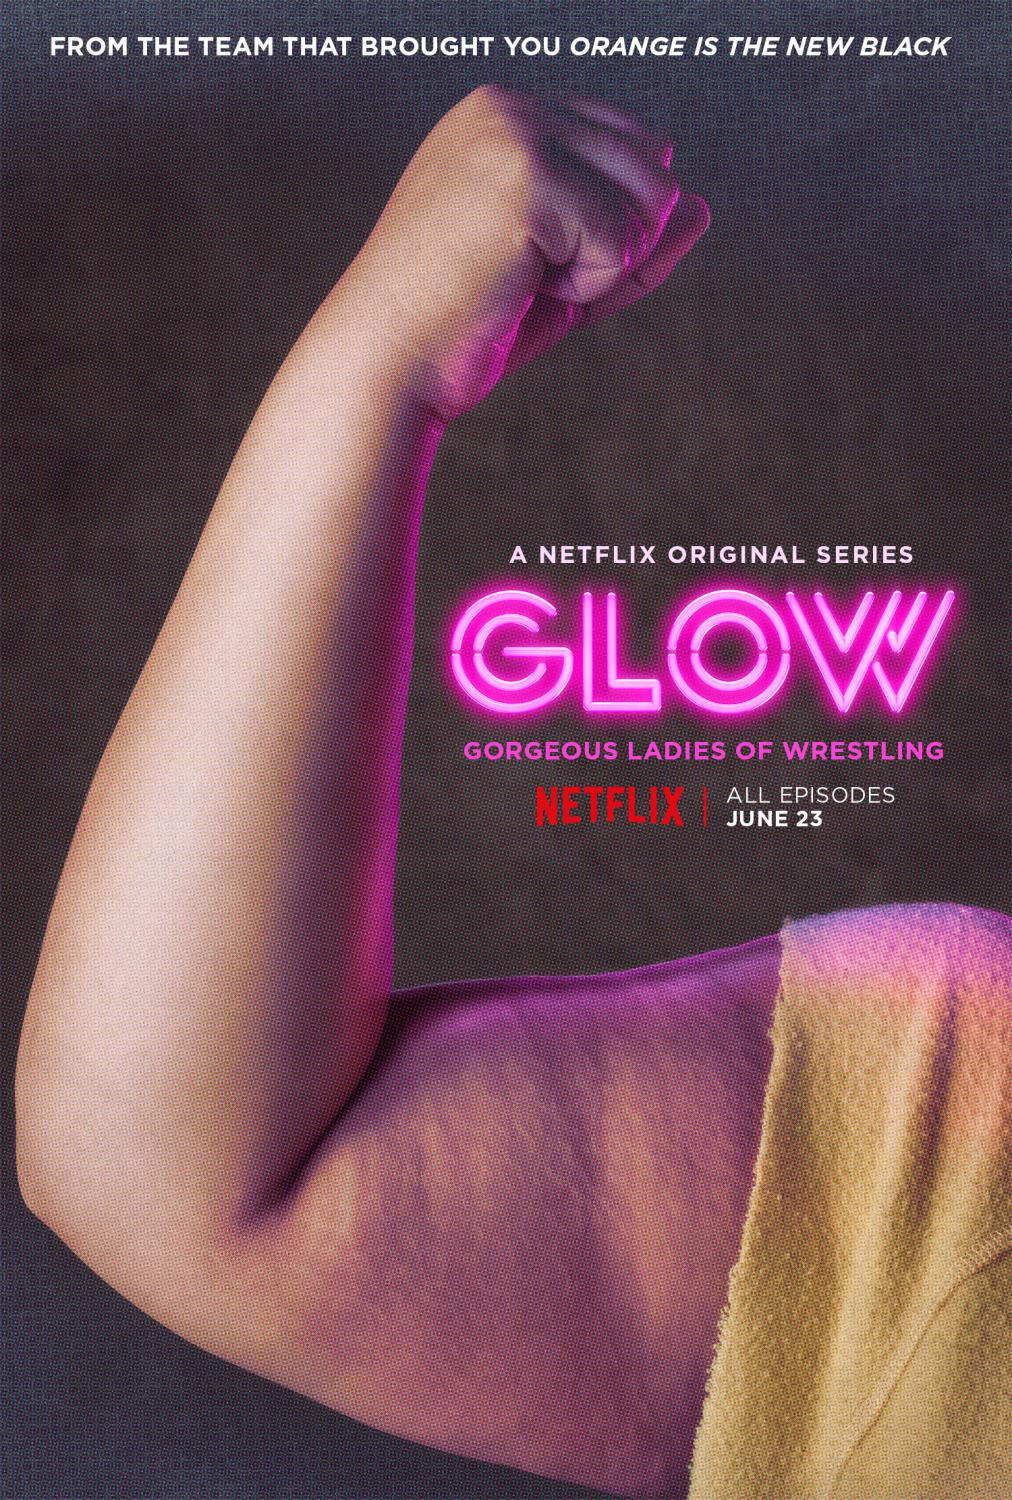 Series Netflix - GLOW - Gorgeous Ladies of Wrestling - arm poster